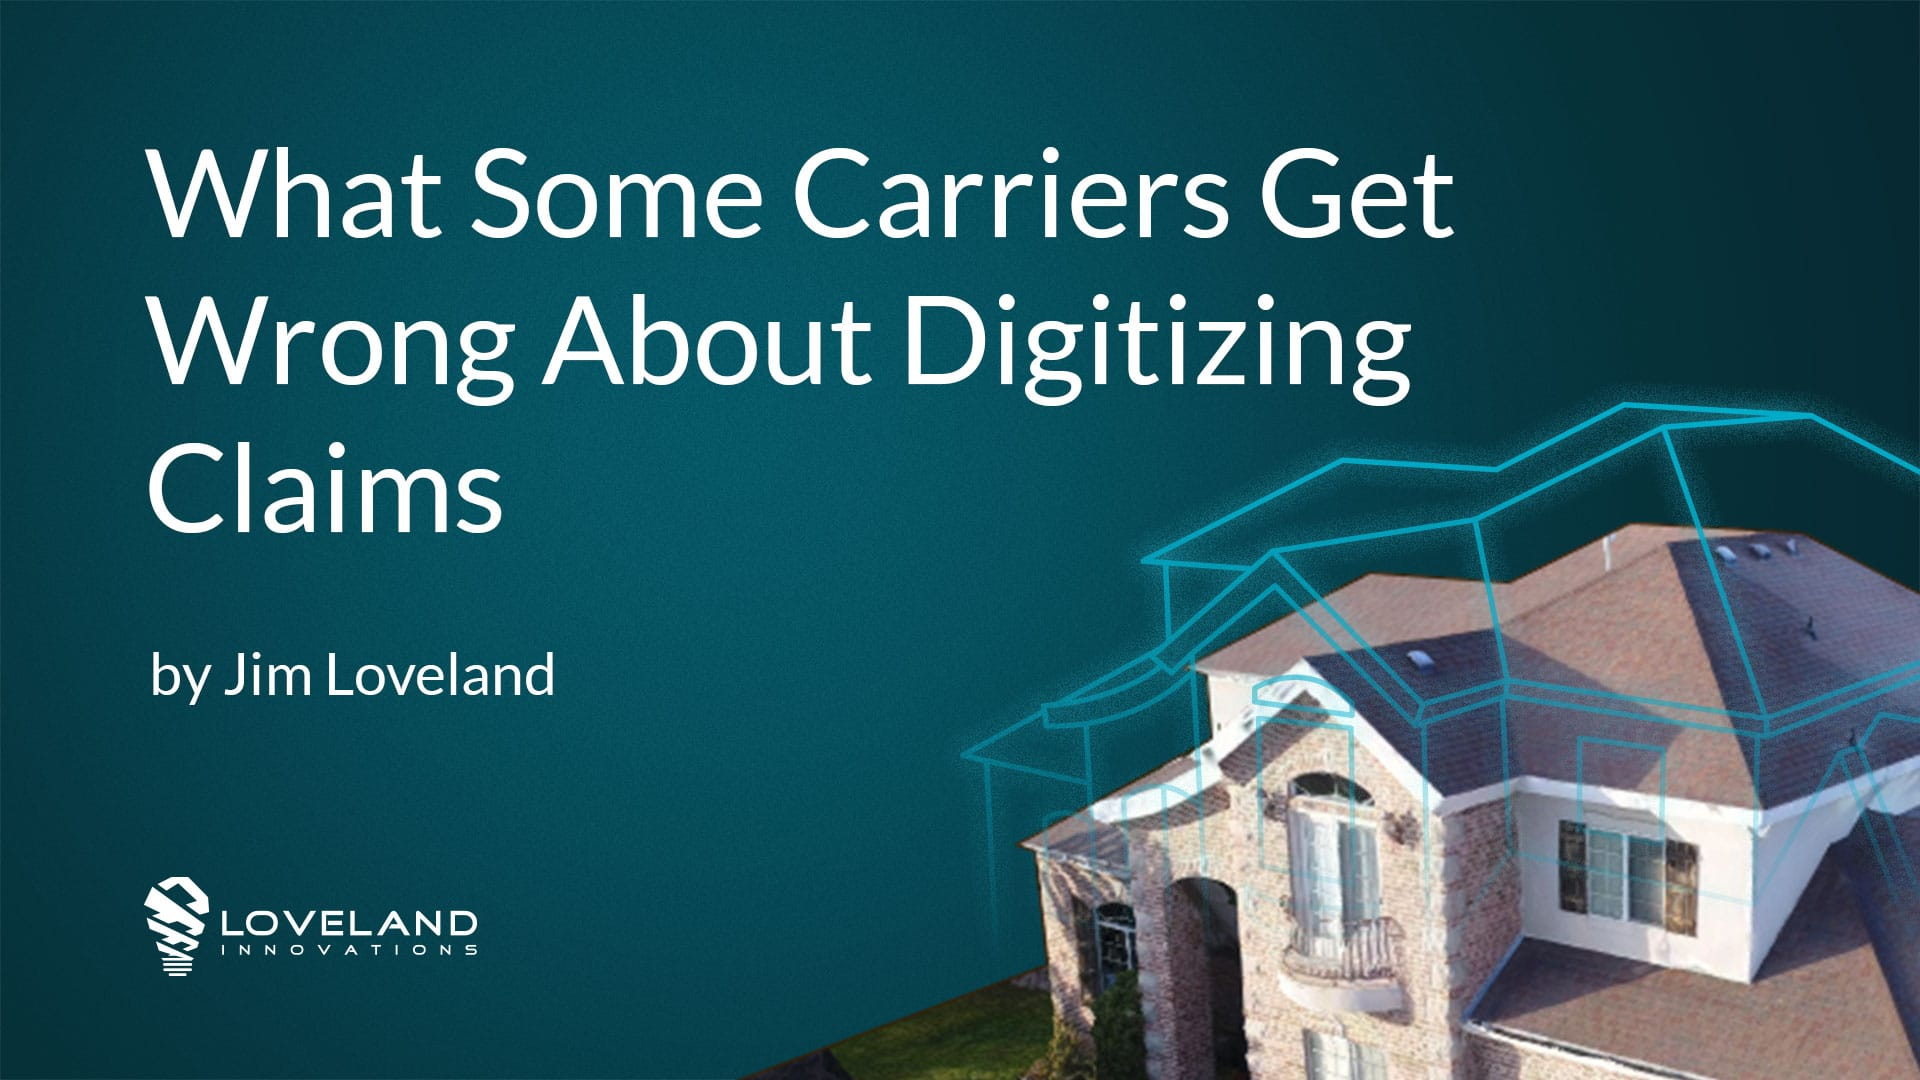 Why carriers can benefit from digital twins